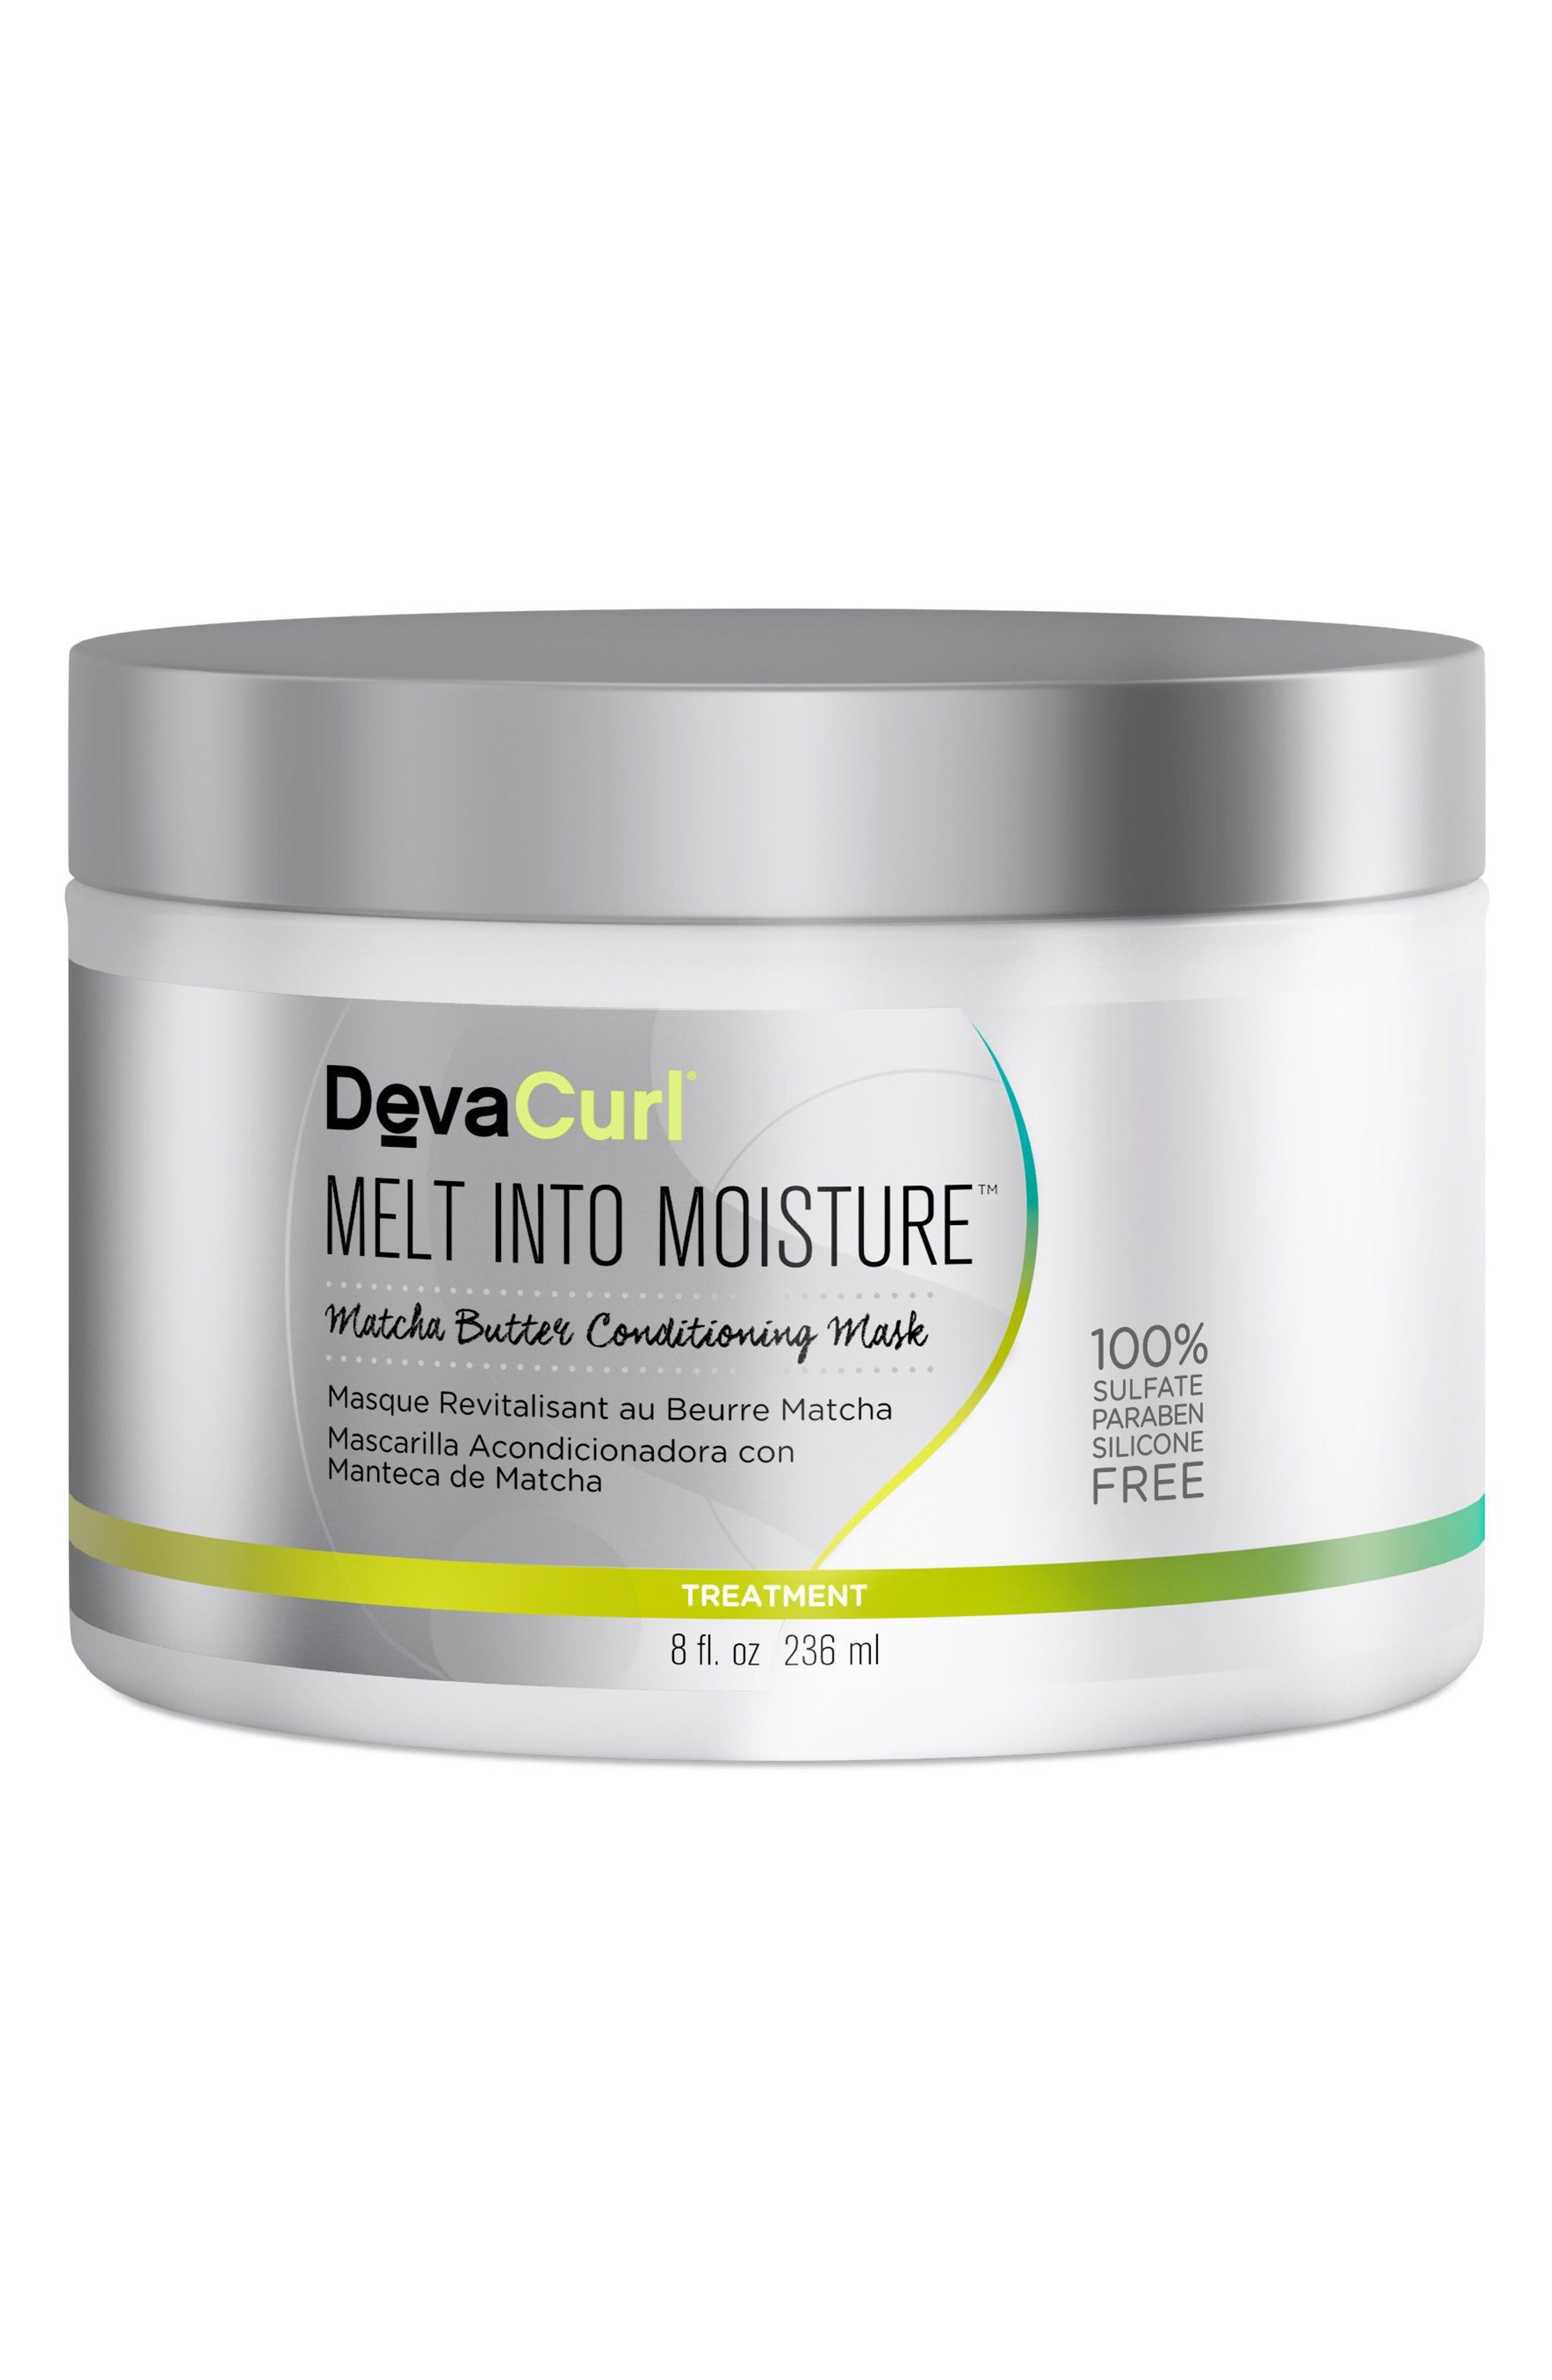 Melt Into Moisture Matcha Butter Conditioning Mask,                             Main thumbnail 1, color,                             NO COLOR